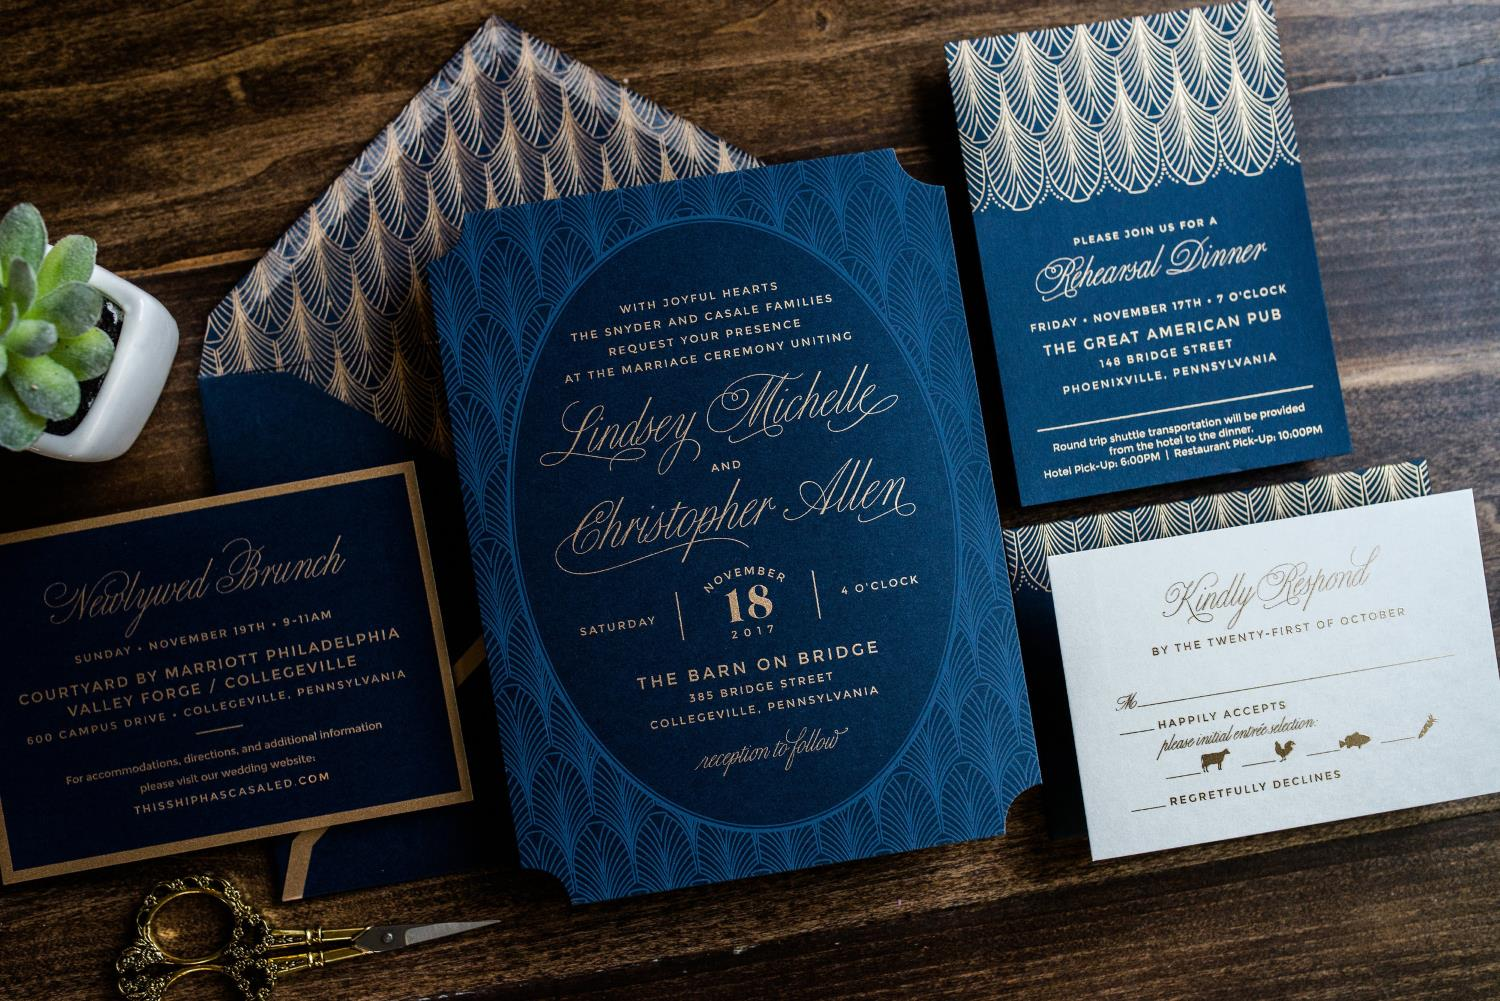 EVENING GLAMOUR WEDDING INVITATIONS